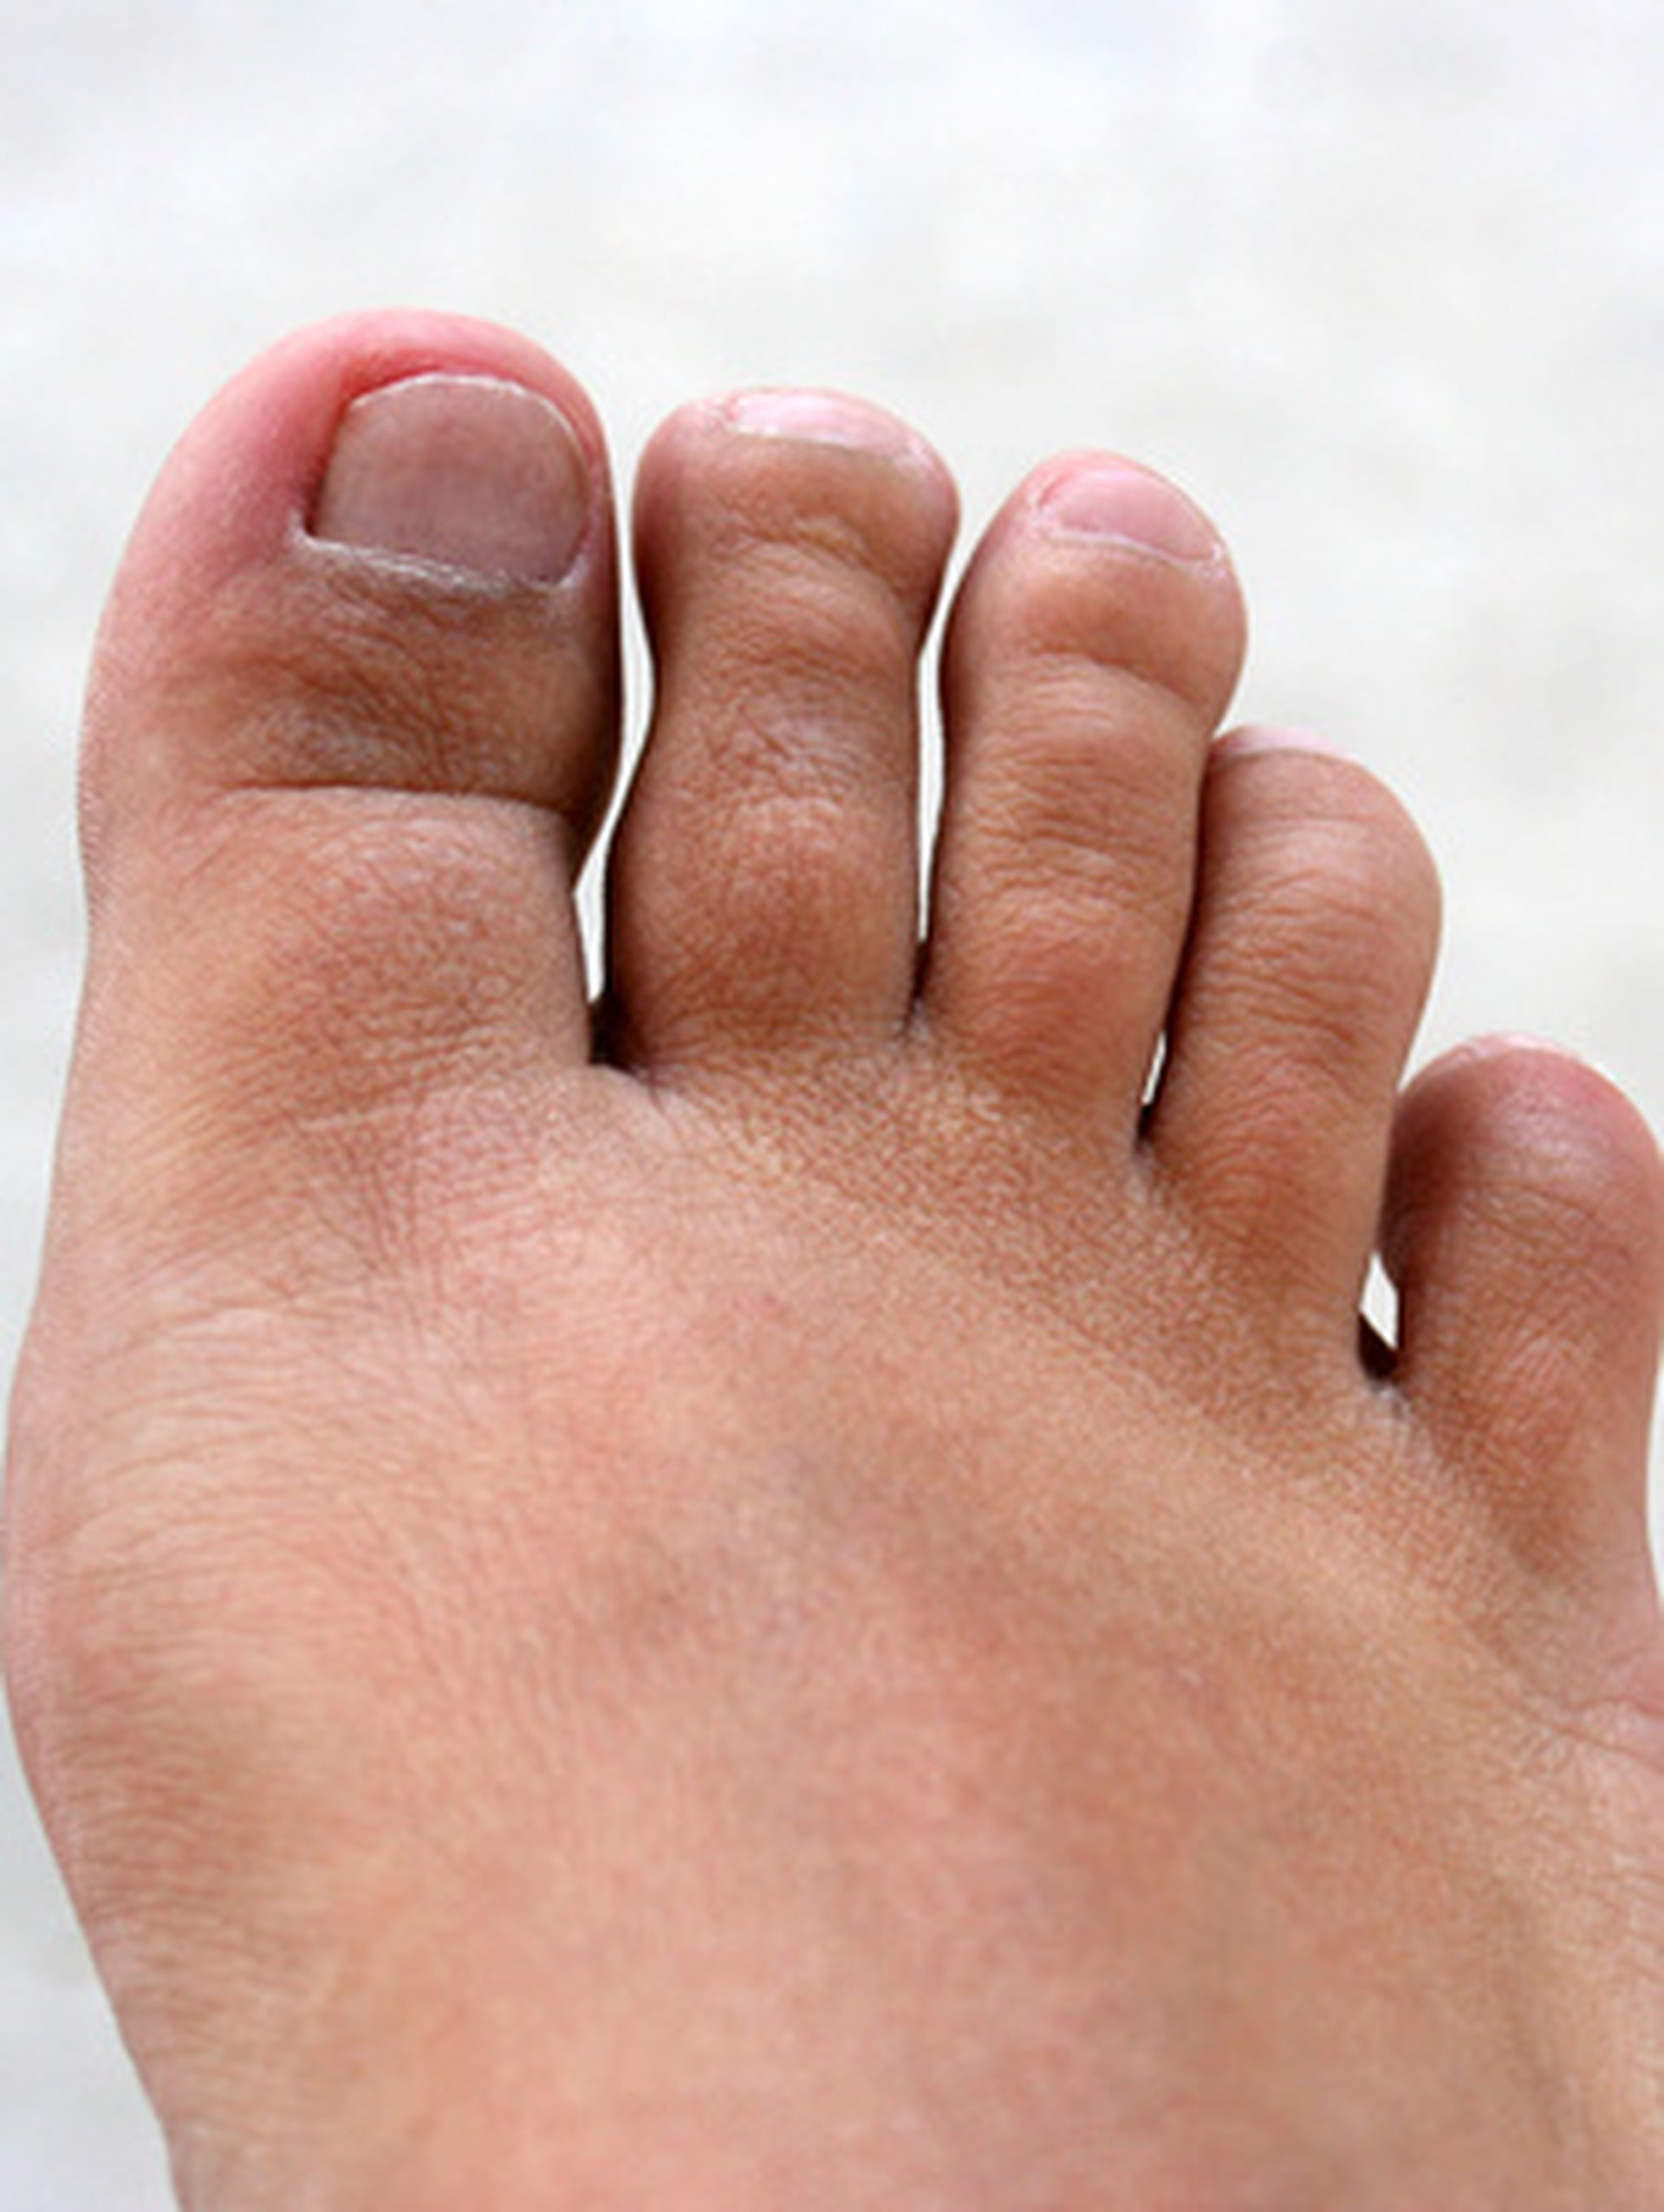 About Toenail Fungus Laser Treatment | LIVESTRONG.COM